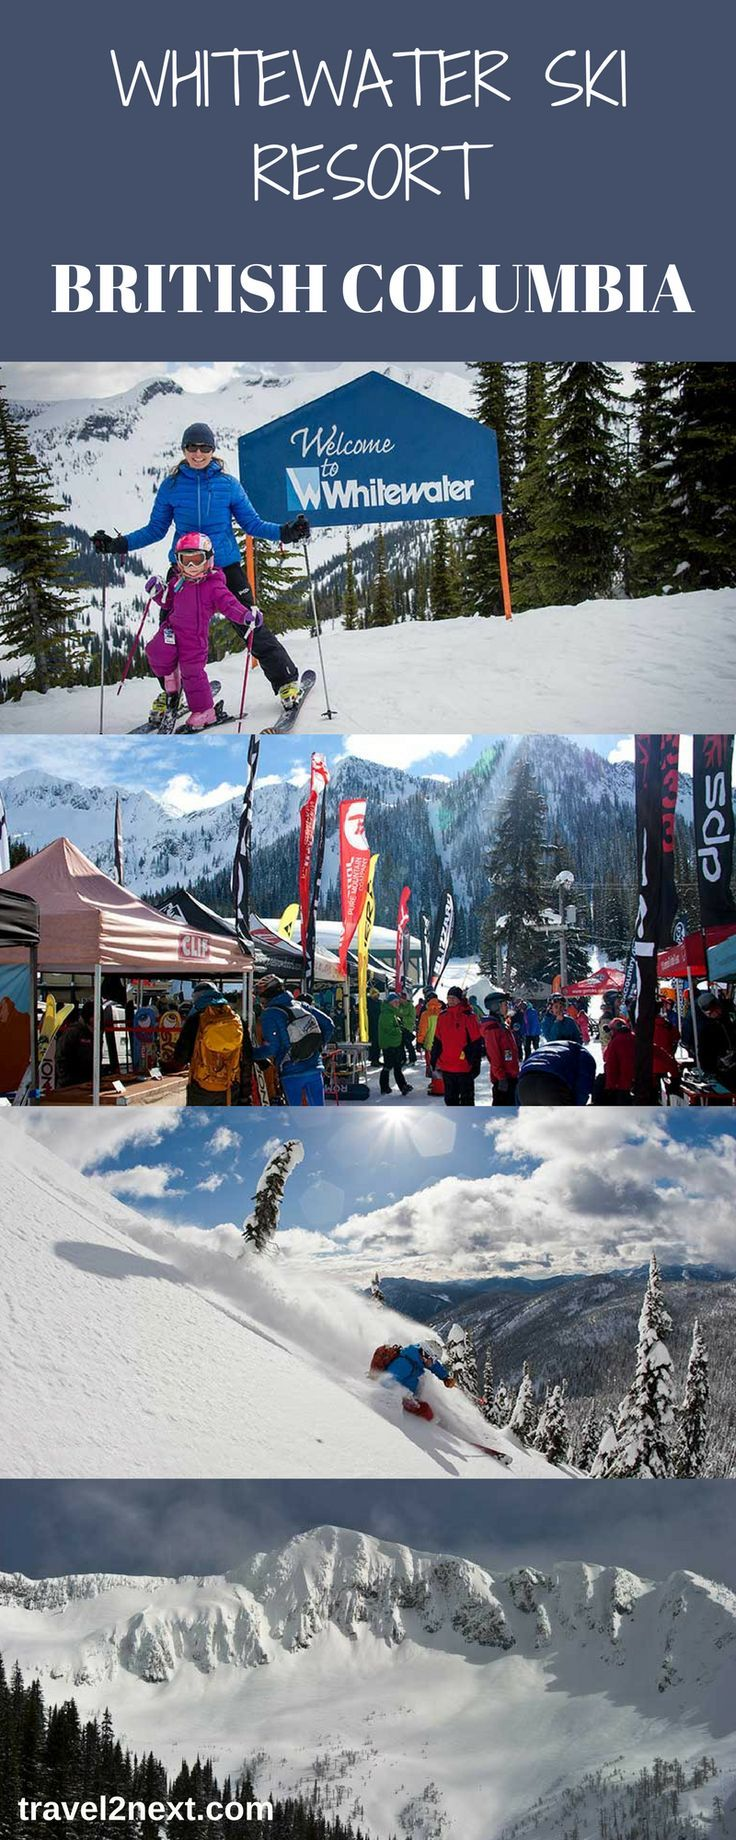 Whitewater Ski Resort Photo Gallery | British Columbia, Ski Canada. Whitewater Ski Resort in British Columbia is a hidden gem in British Columbia's Kootenay region.